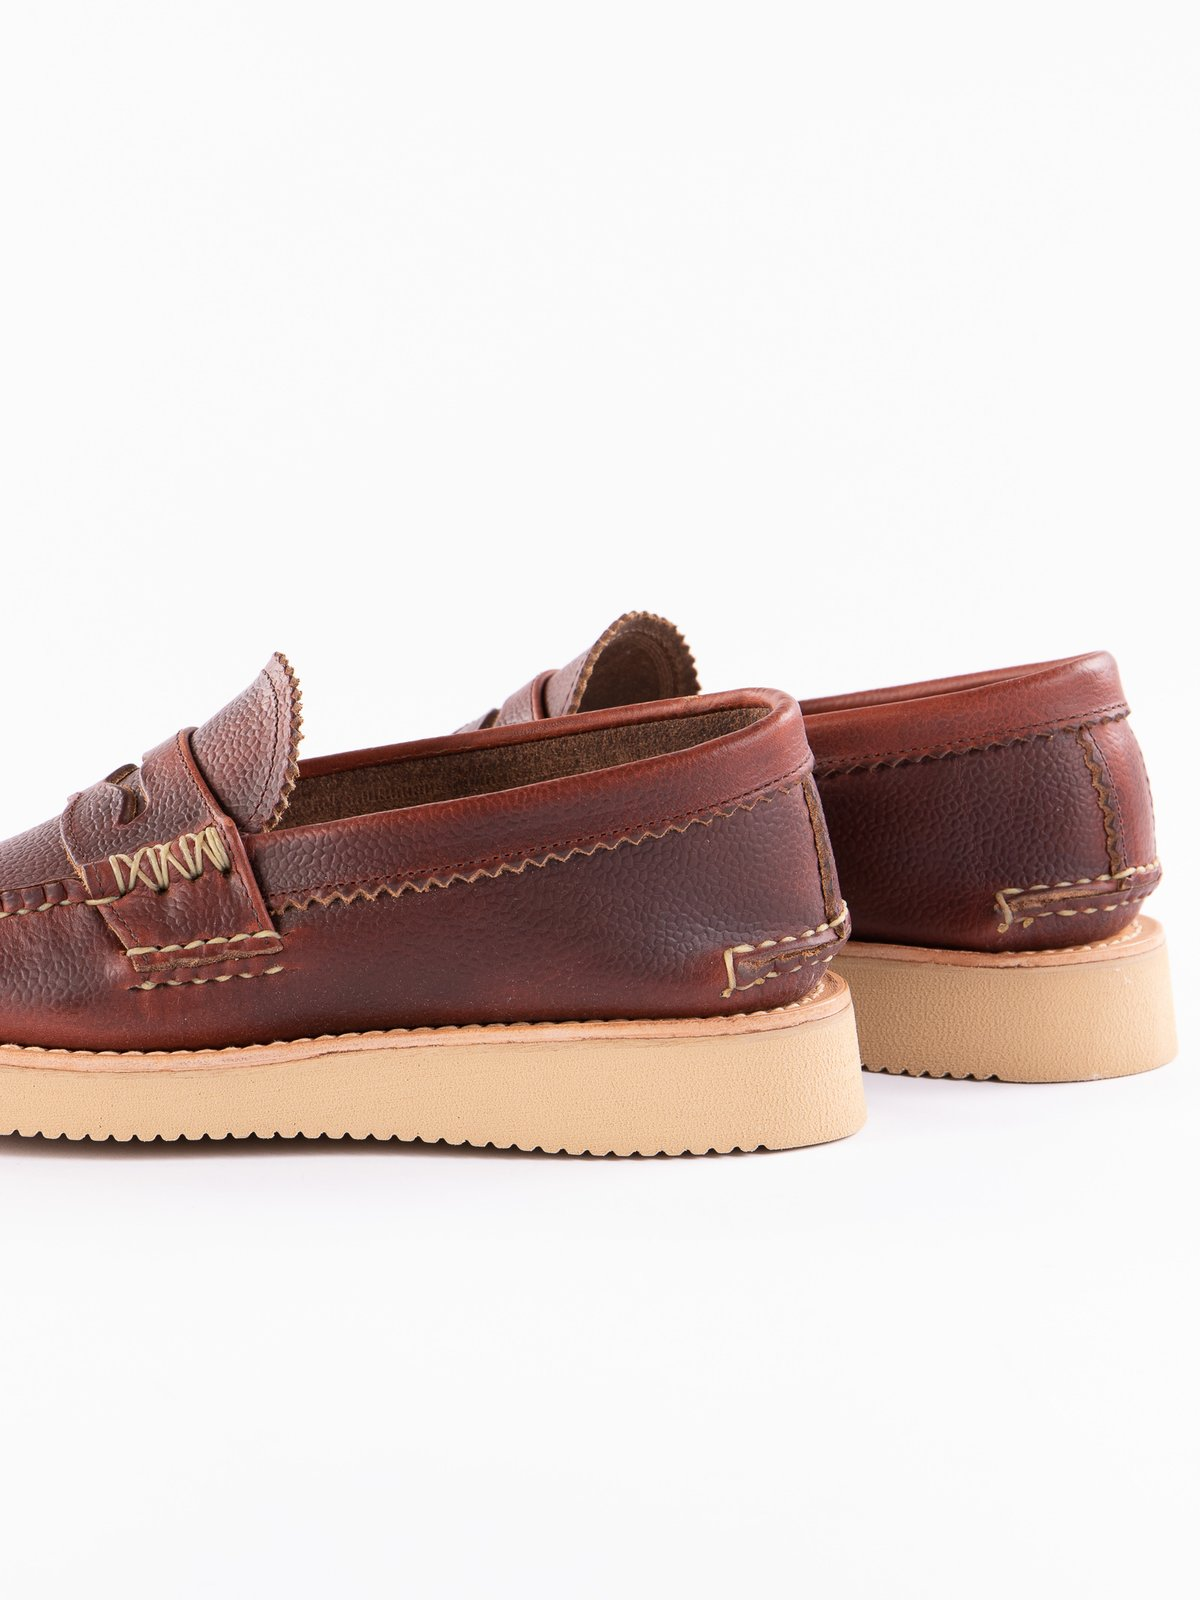 SG Tan Loafer Shoe Exclusive - Image 4